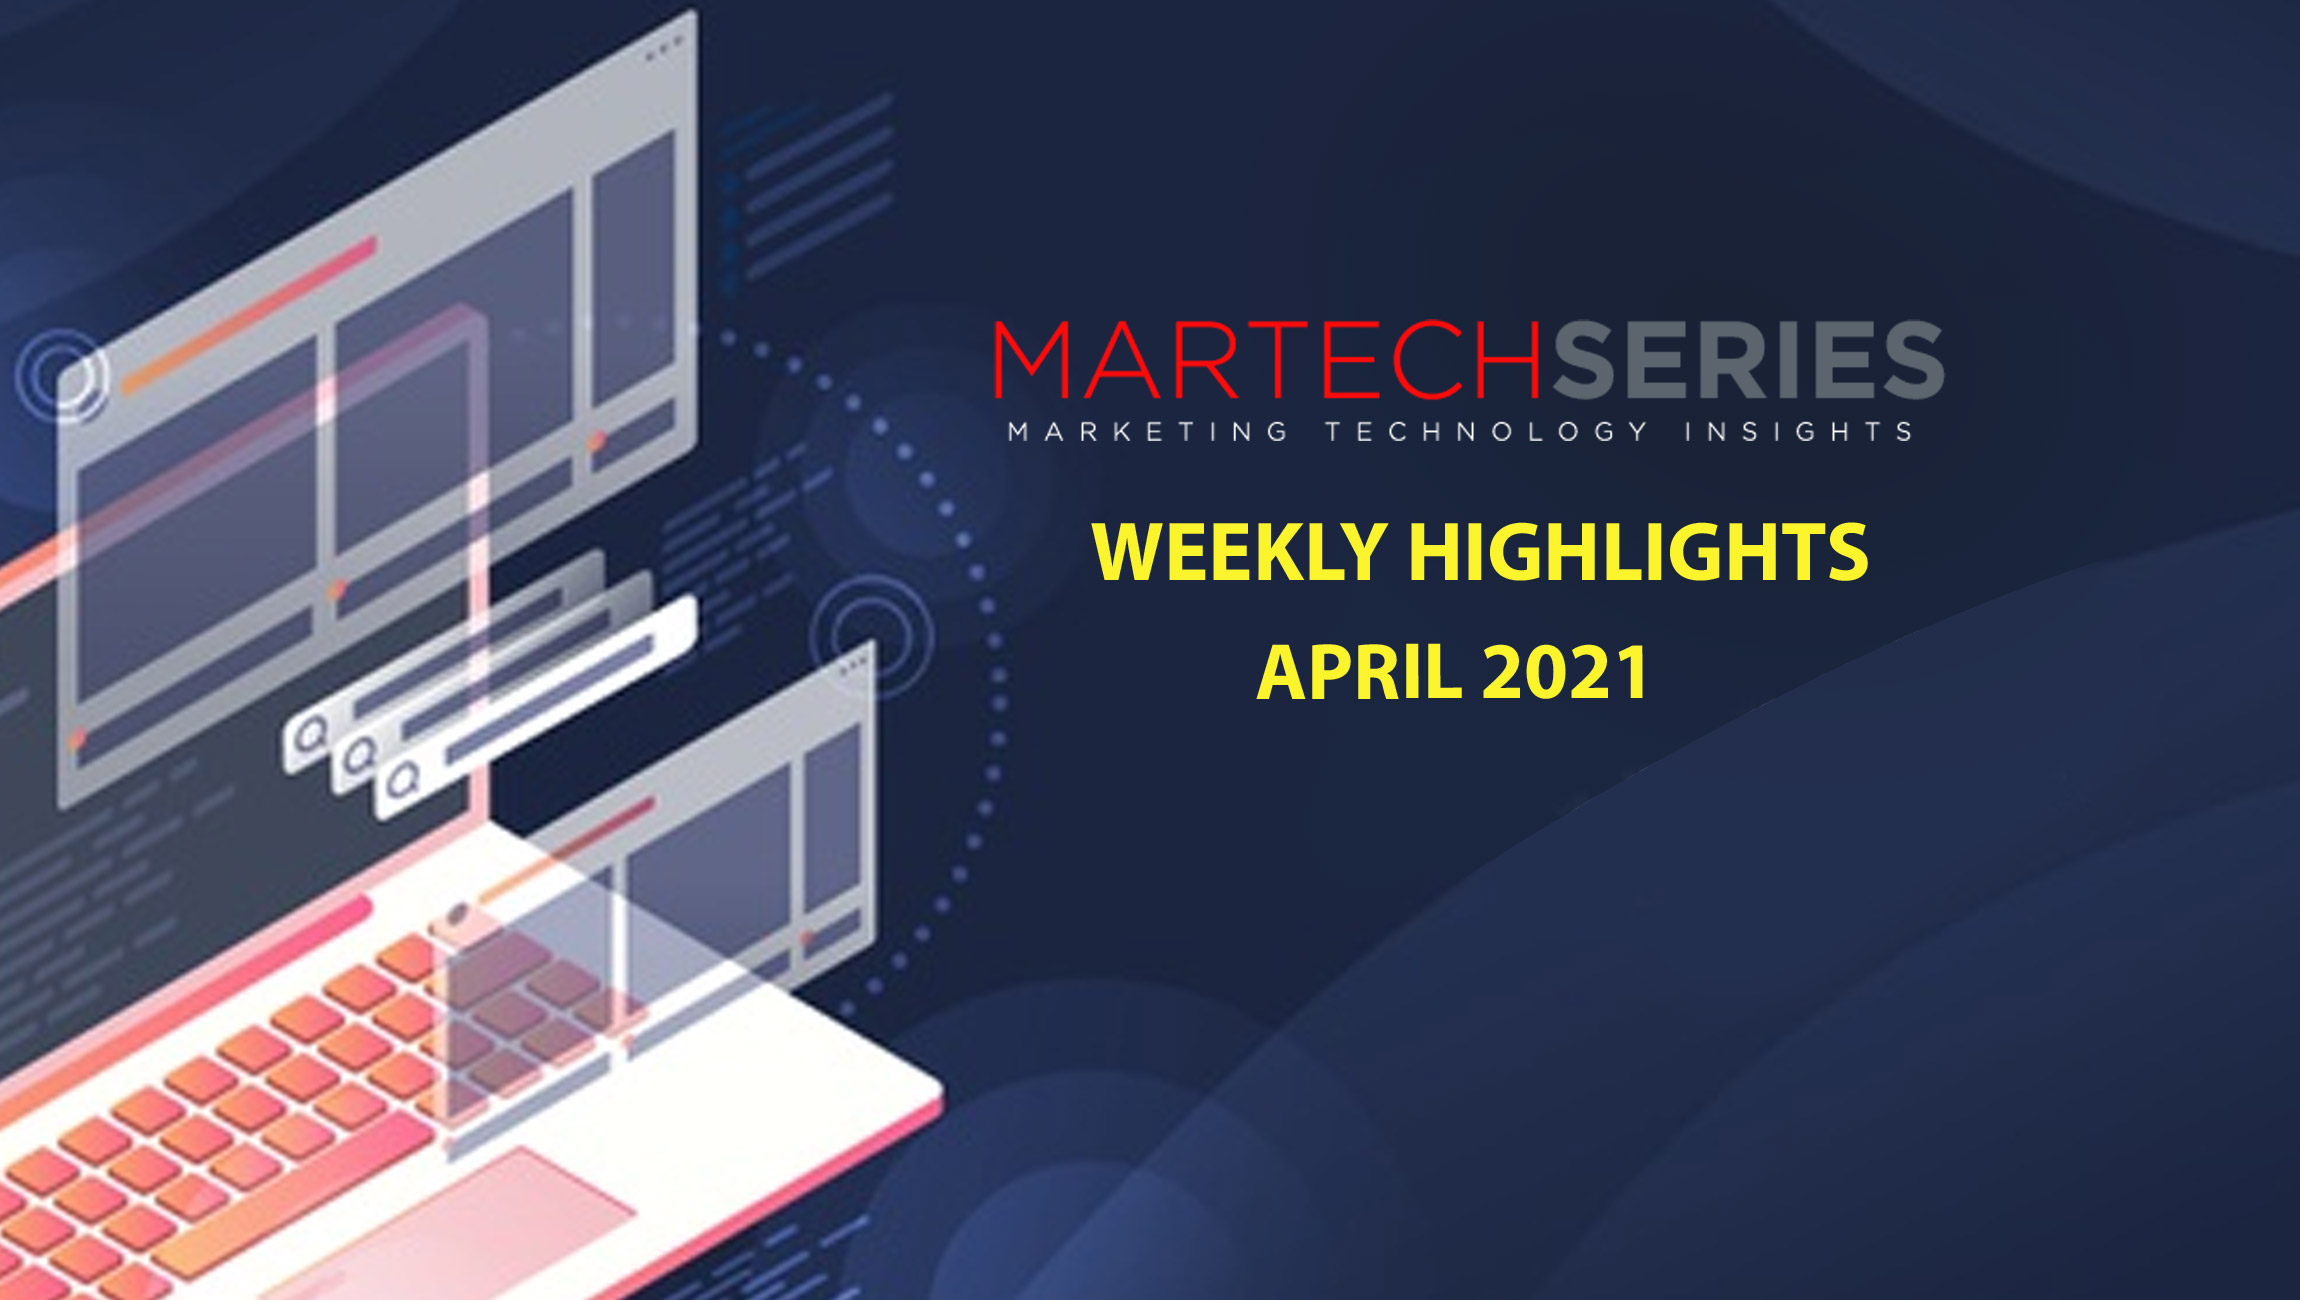 Marketing Technology Highlights of The Week: 05th-April-2021: Featuring ON24, Deloitte, Demandbase, Bombora (and more)!